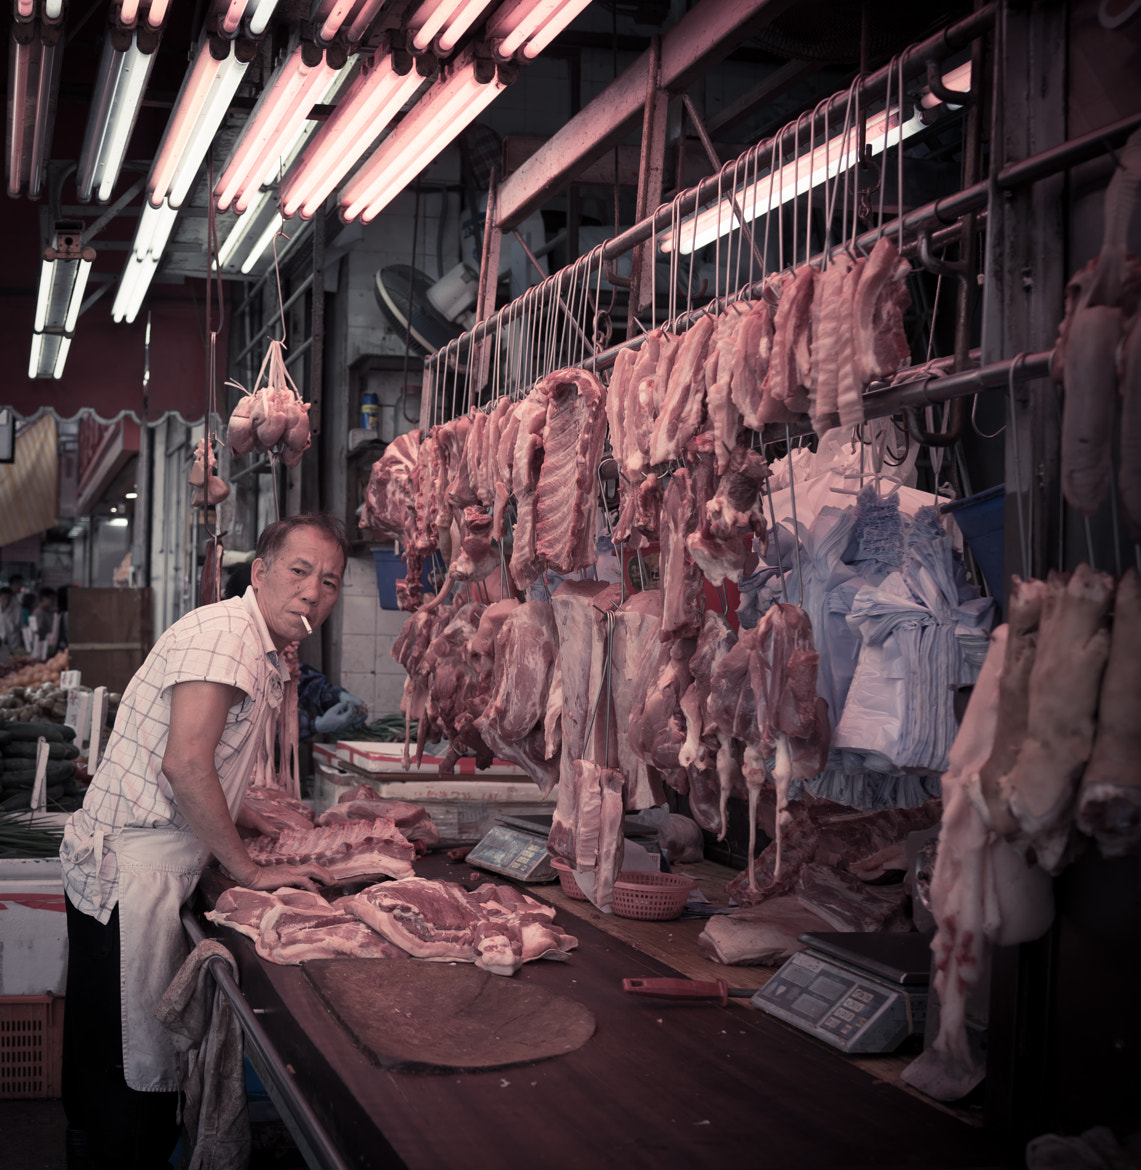 Photograph meat stall by rocco paduano on 500px